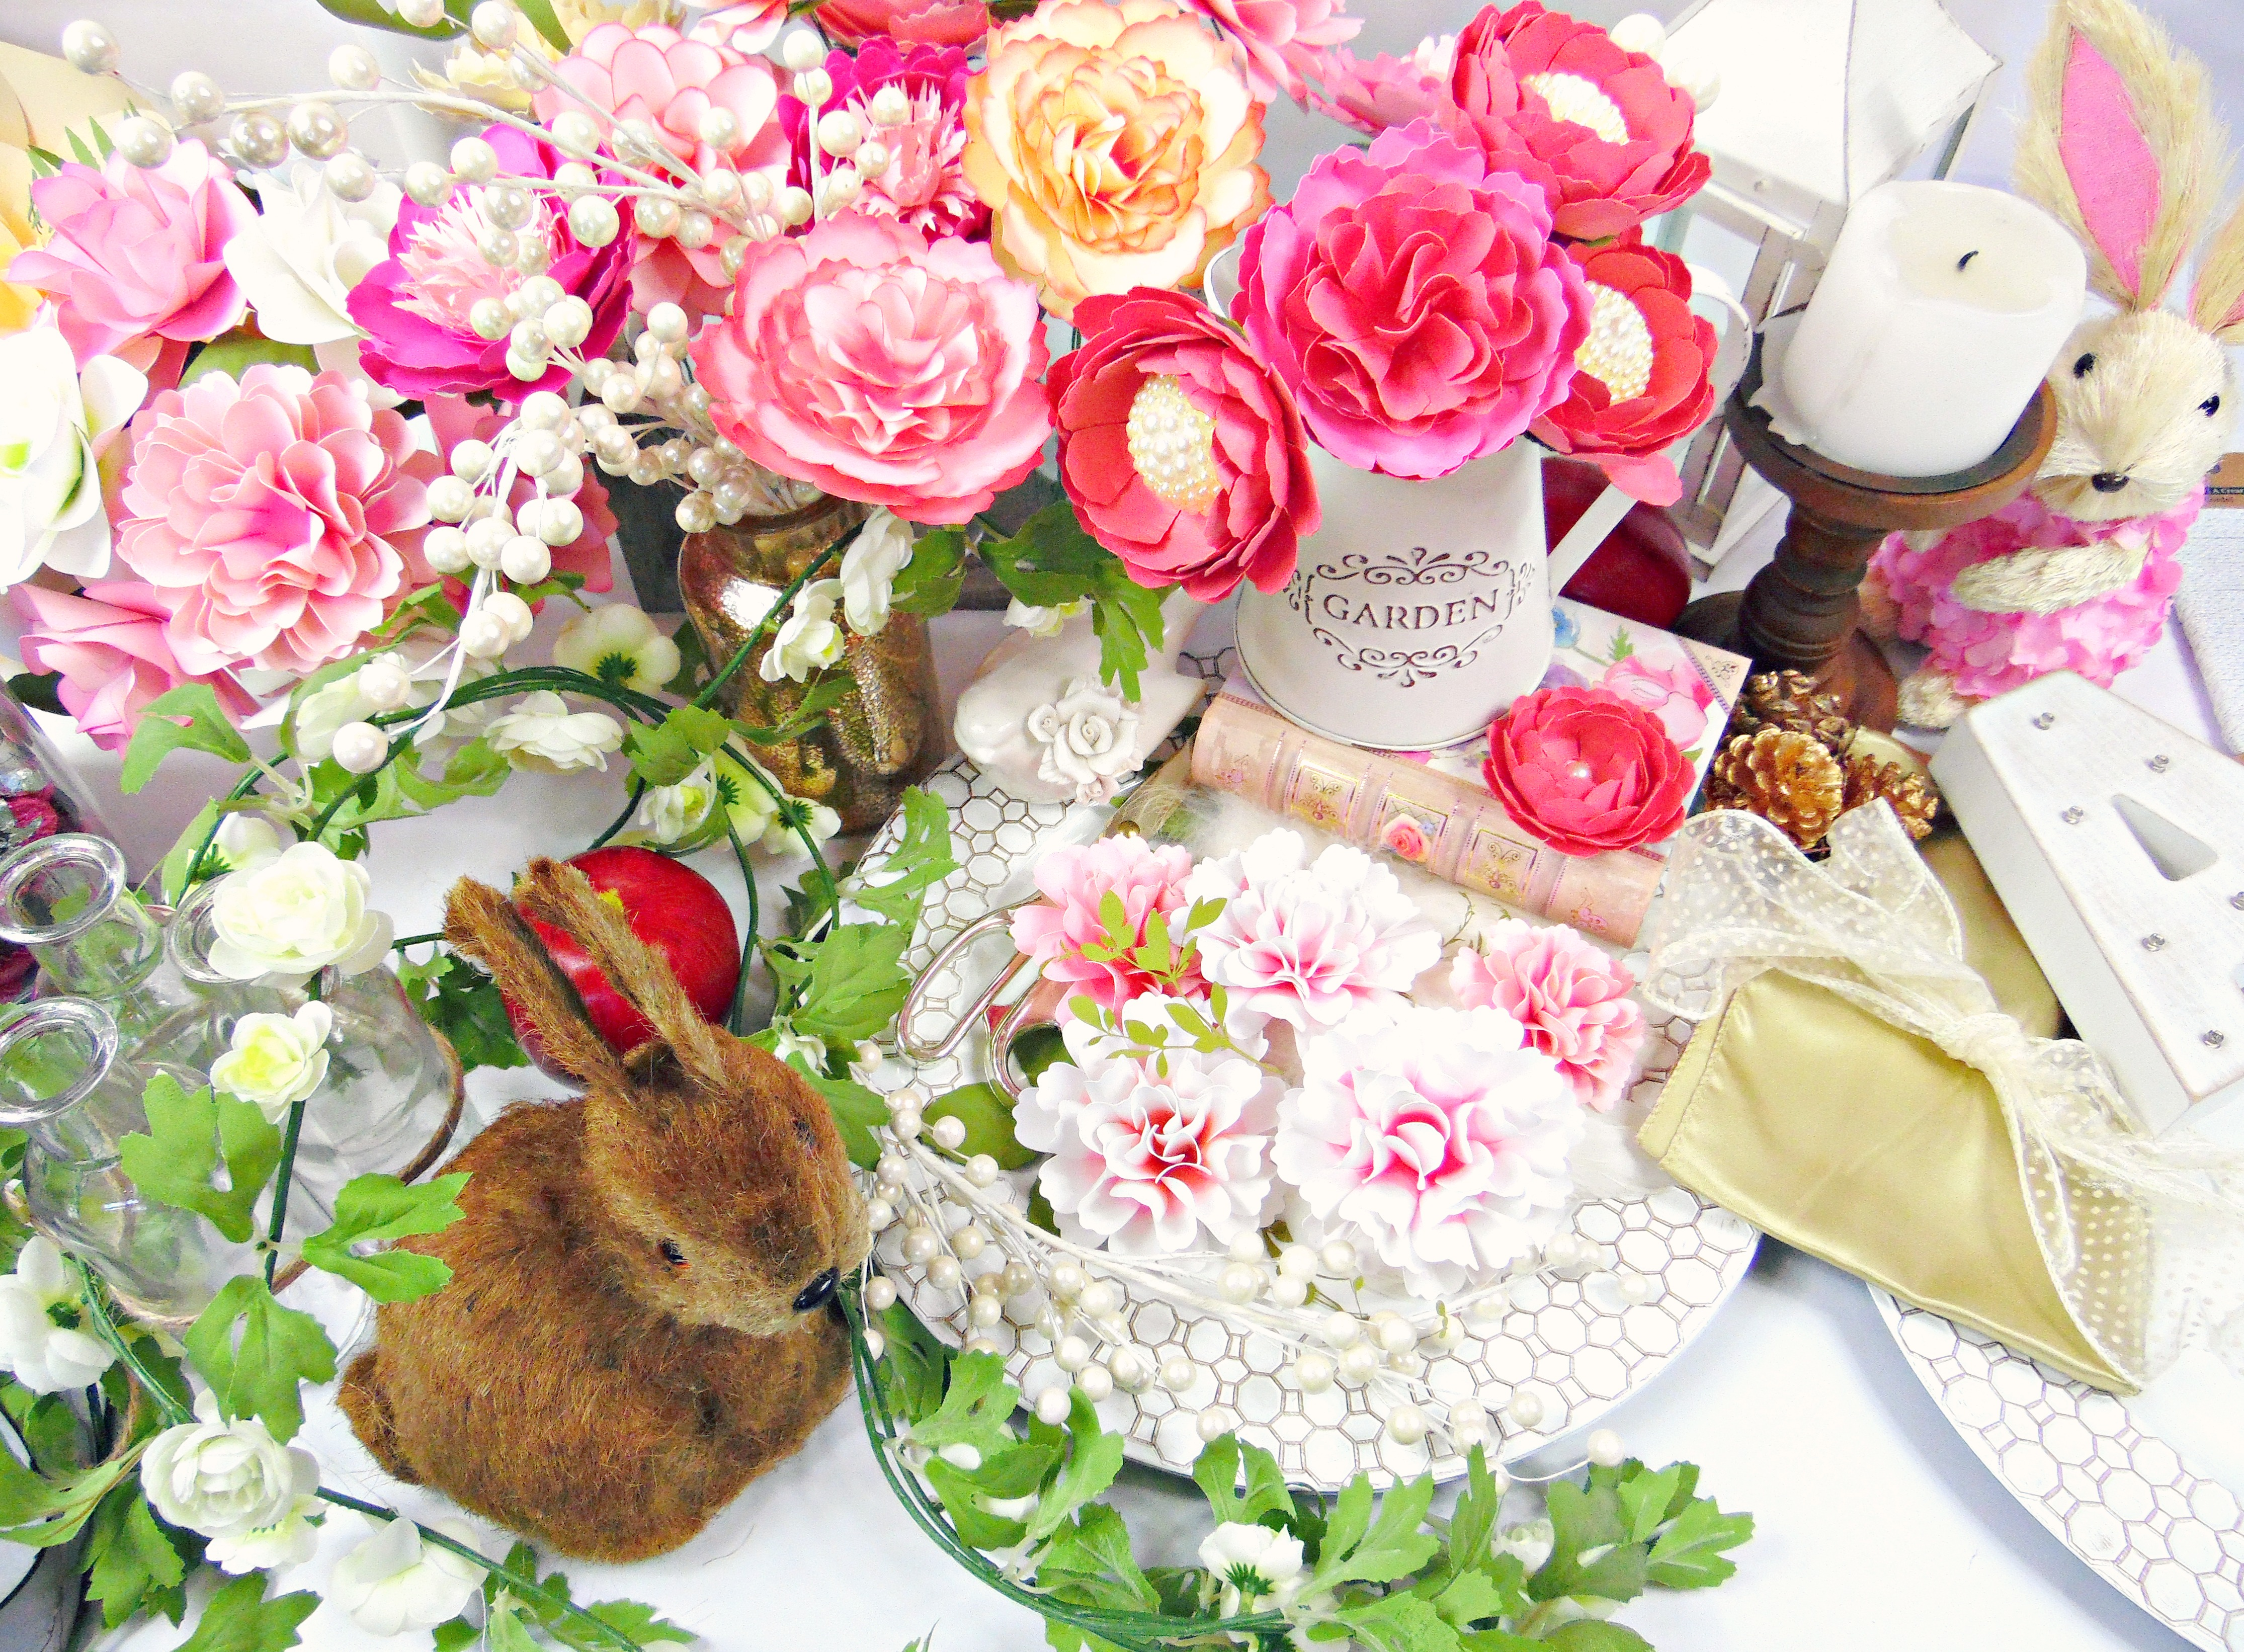 Warm up to Spring with these tablescape ideas